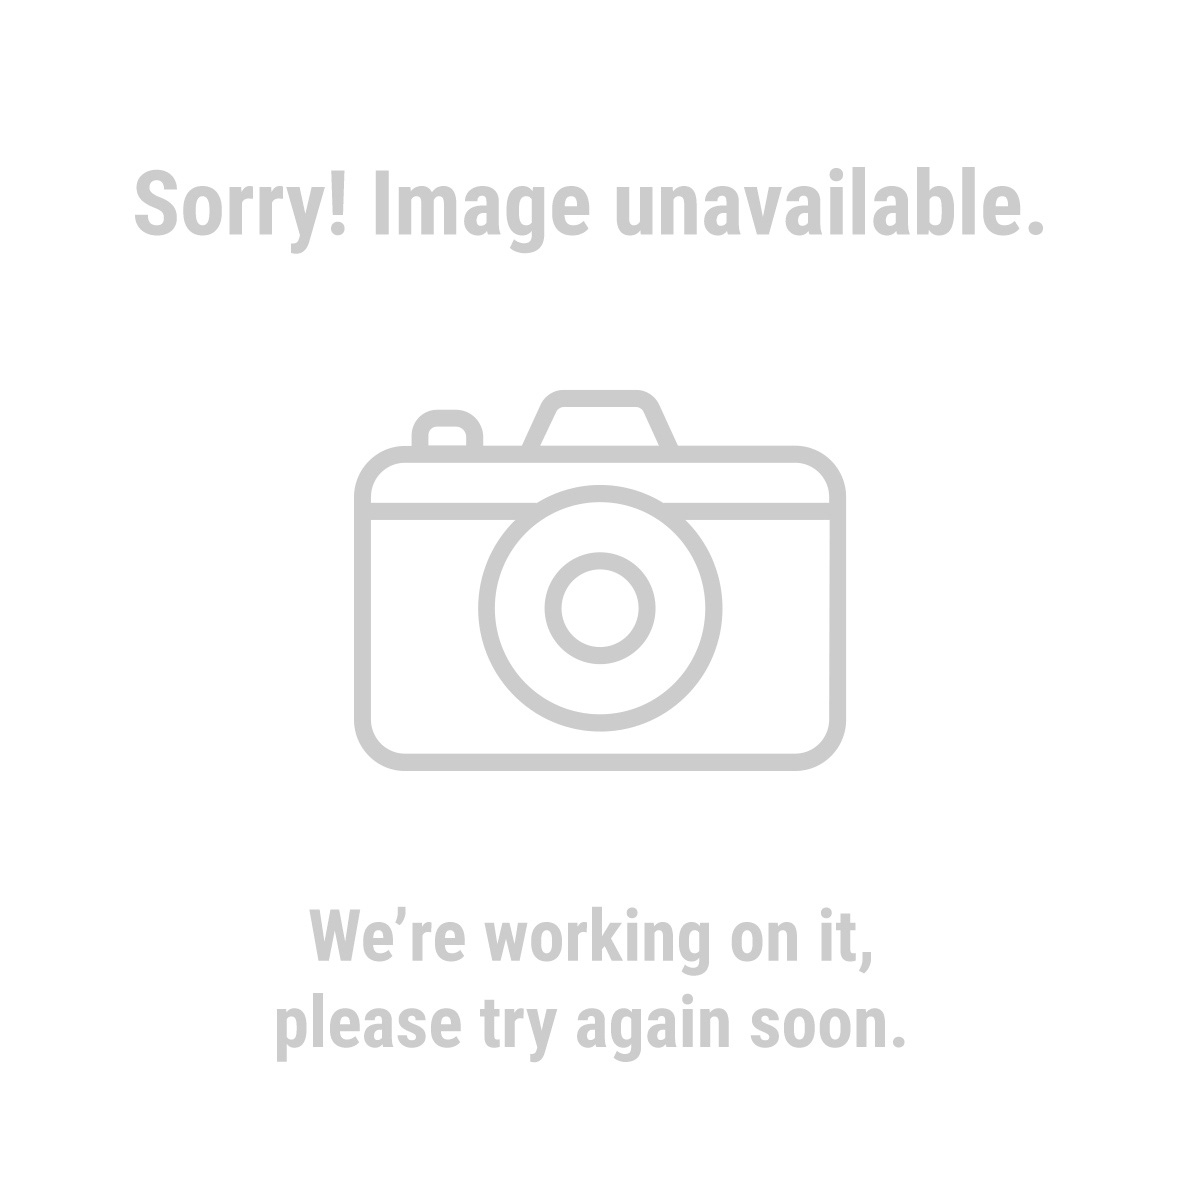 97393 Radio Controlled P51 Mustang Airplane